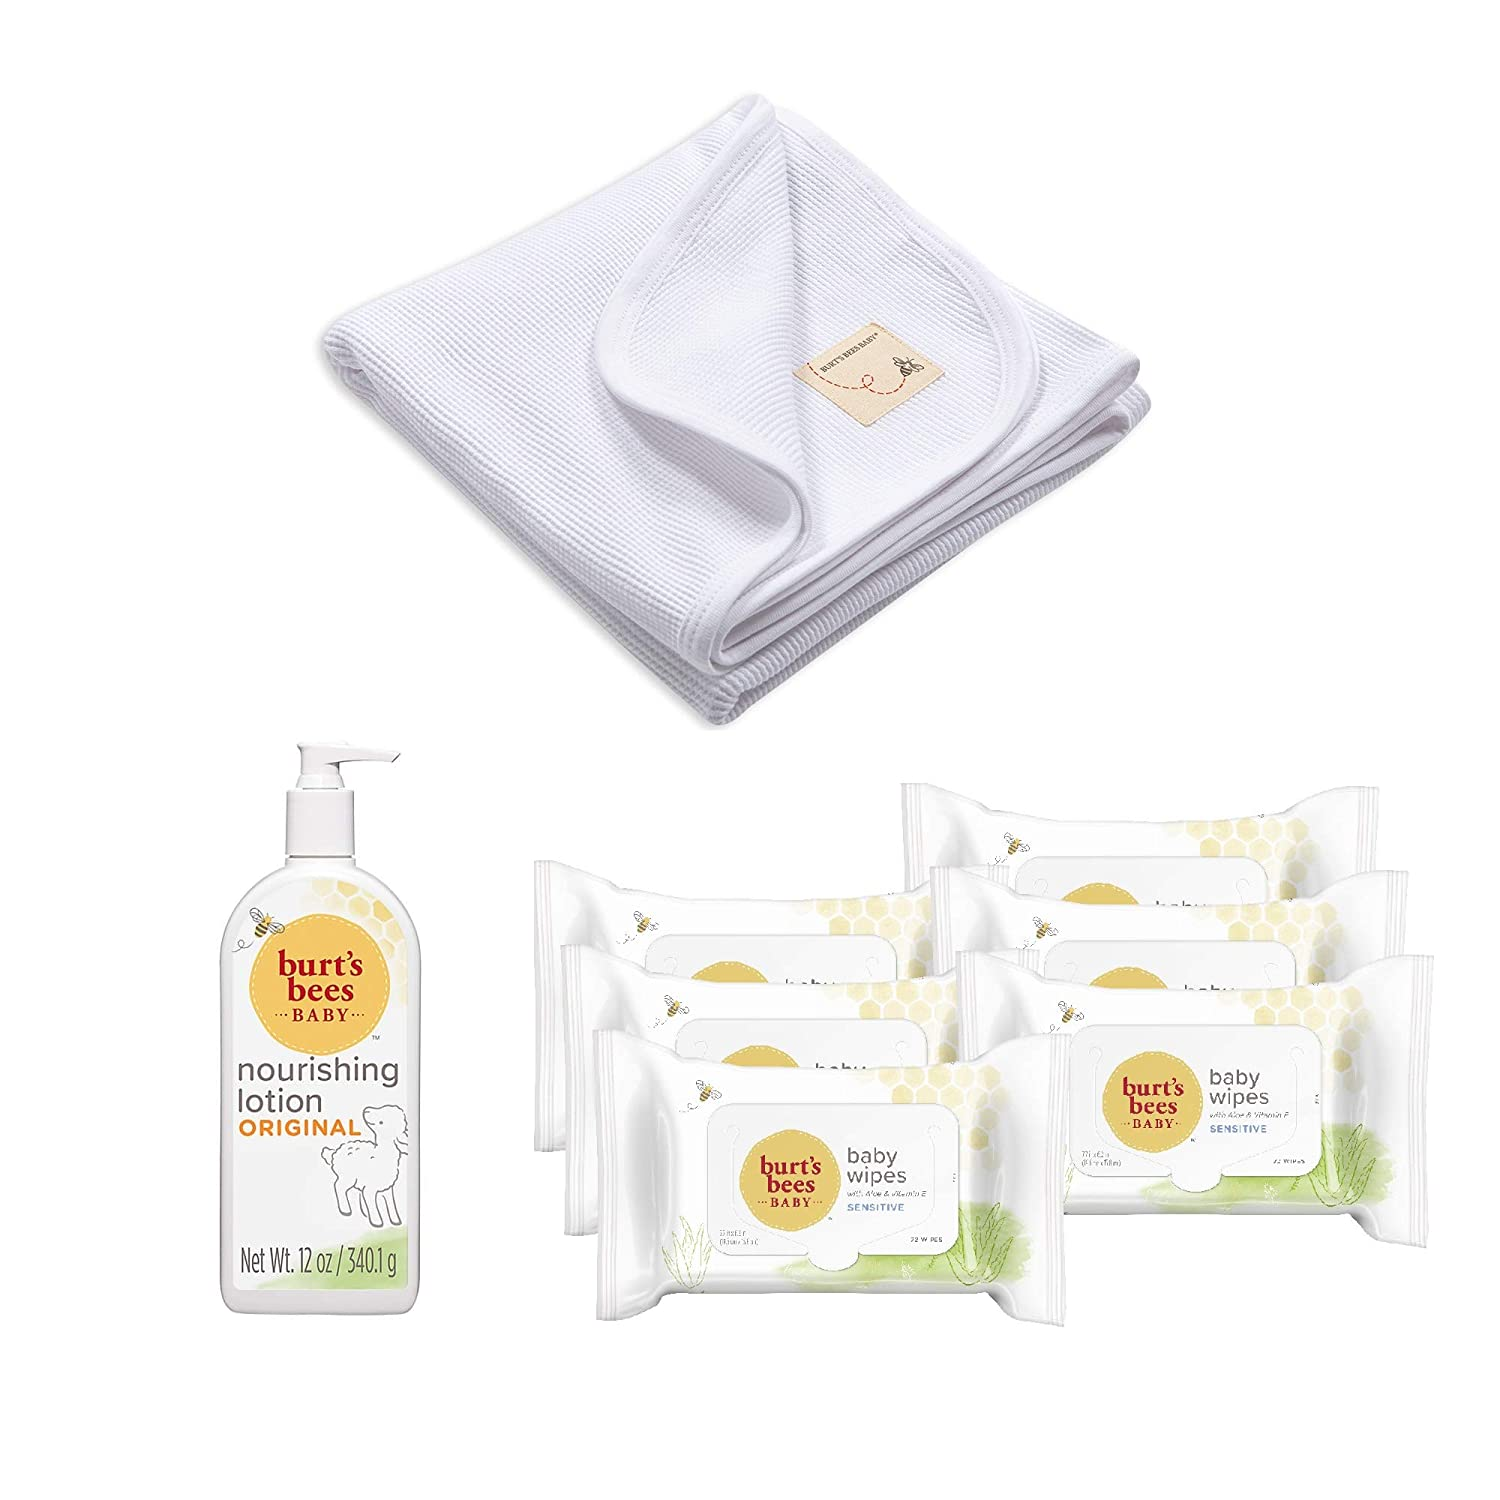 Burt's Bees Baby - Take Me Home Bundle, Includes Baby Wipes, Lotion and Thermal Receiving Blanket